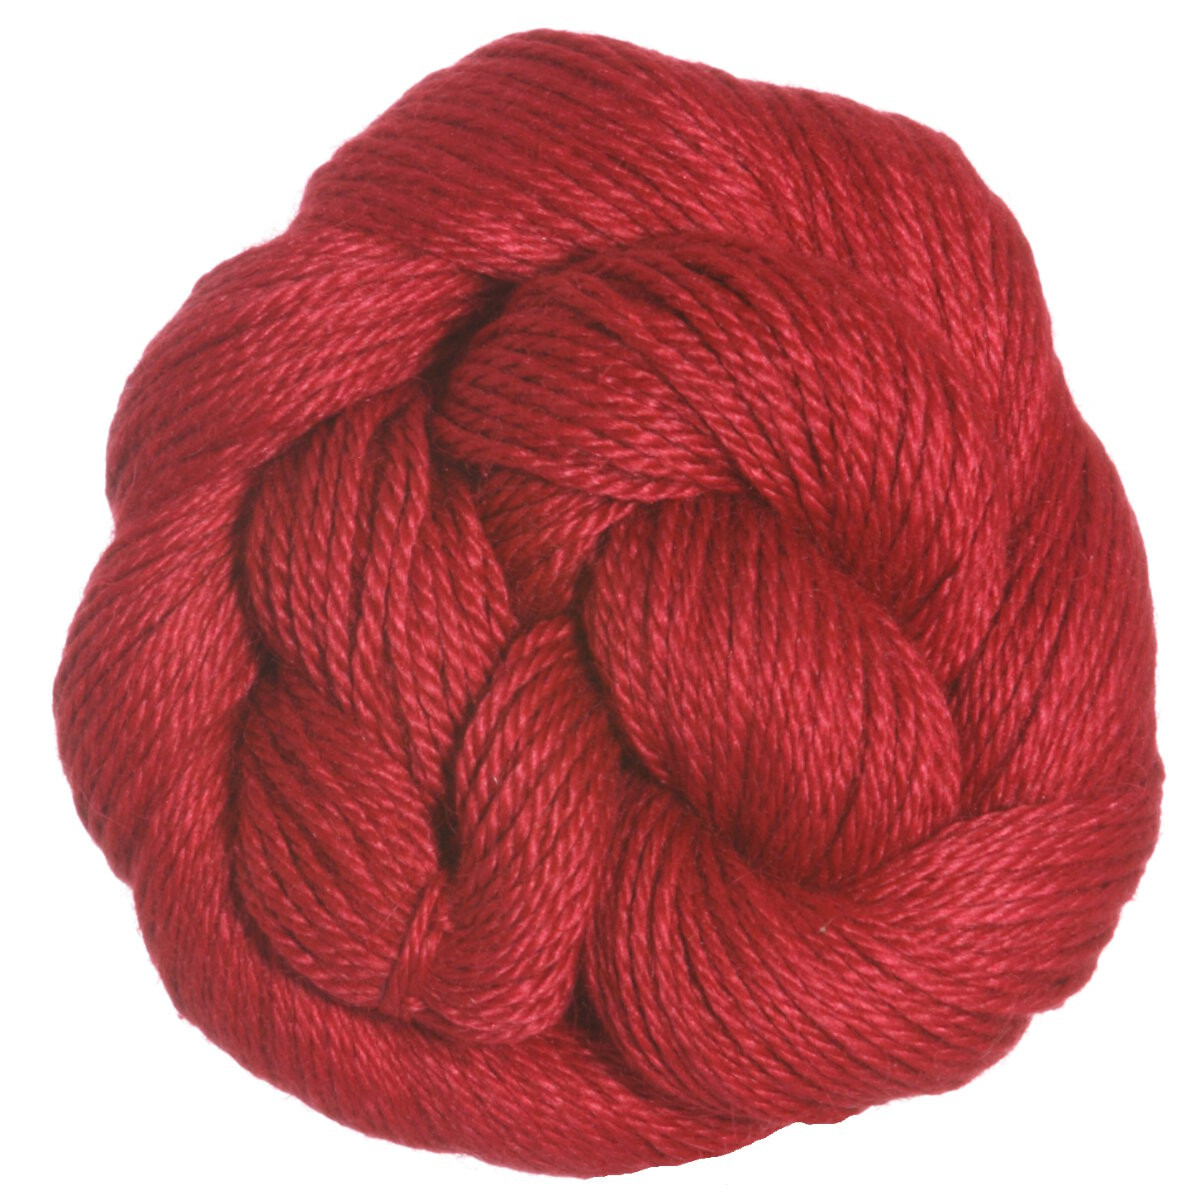 Blue Sky Fibers Alpaca Silk Yarn 123 Ruby at Jimmy Beans